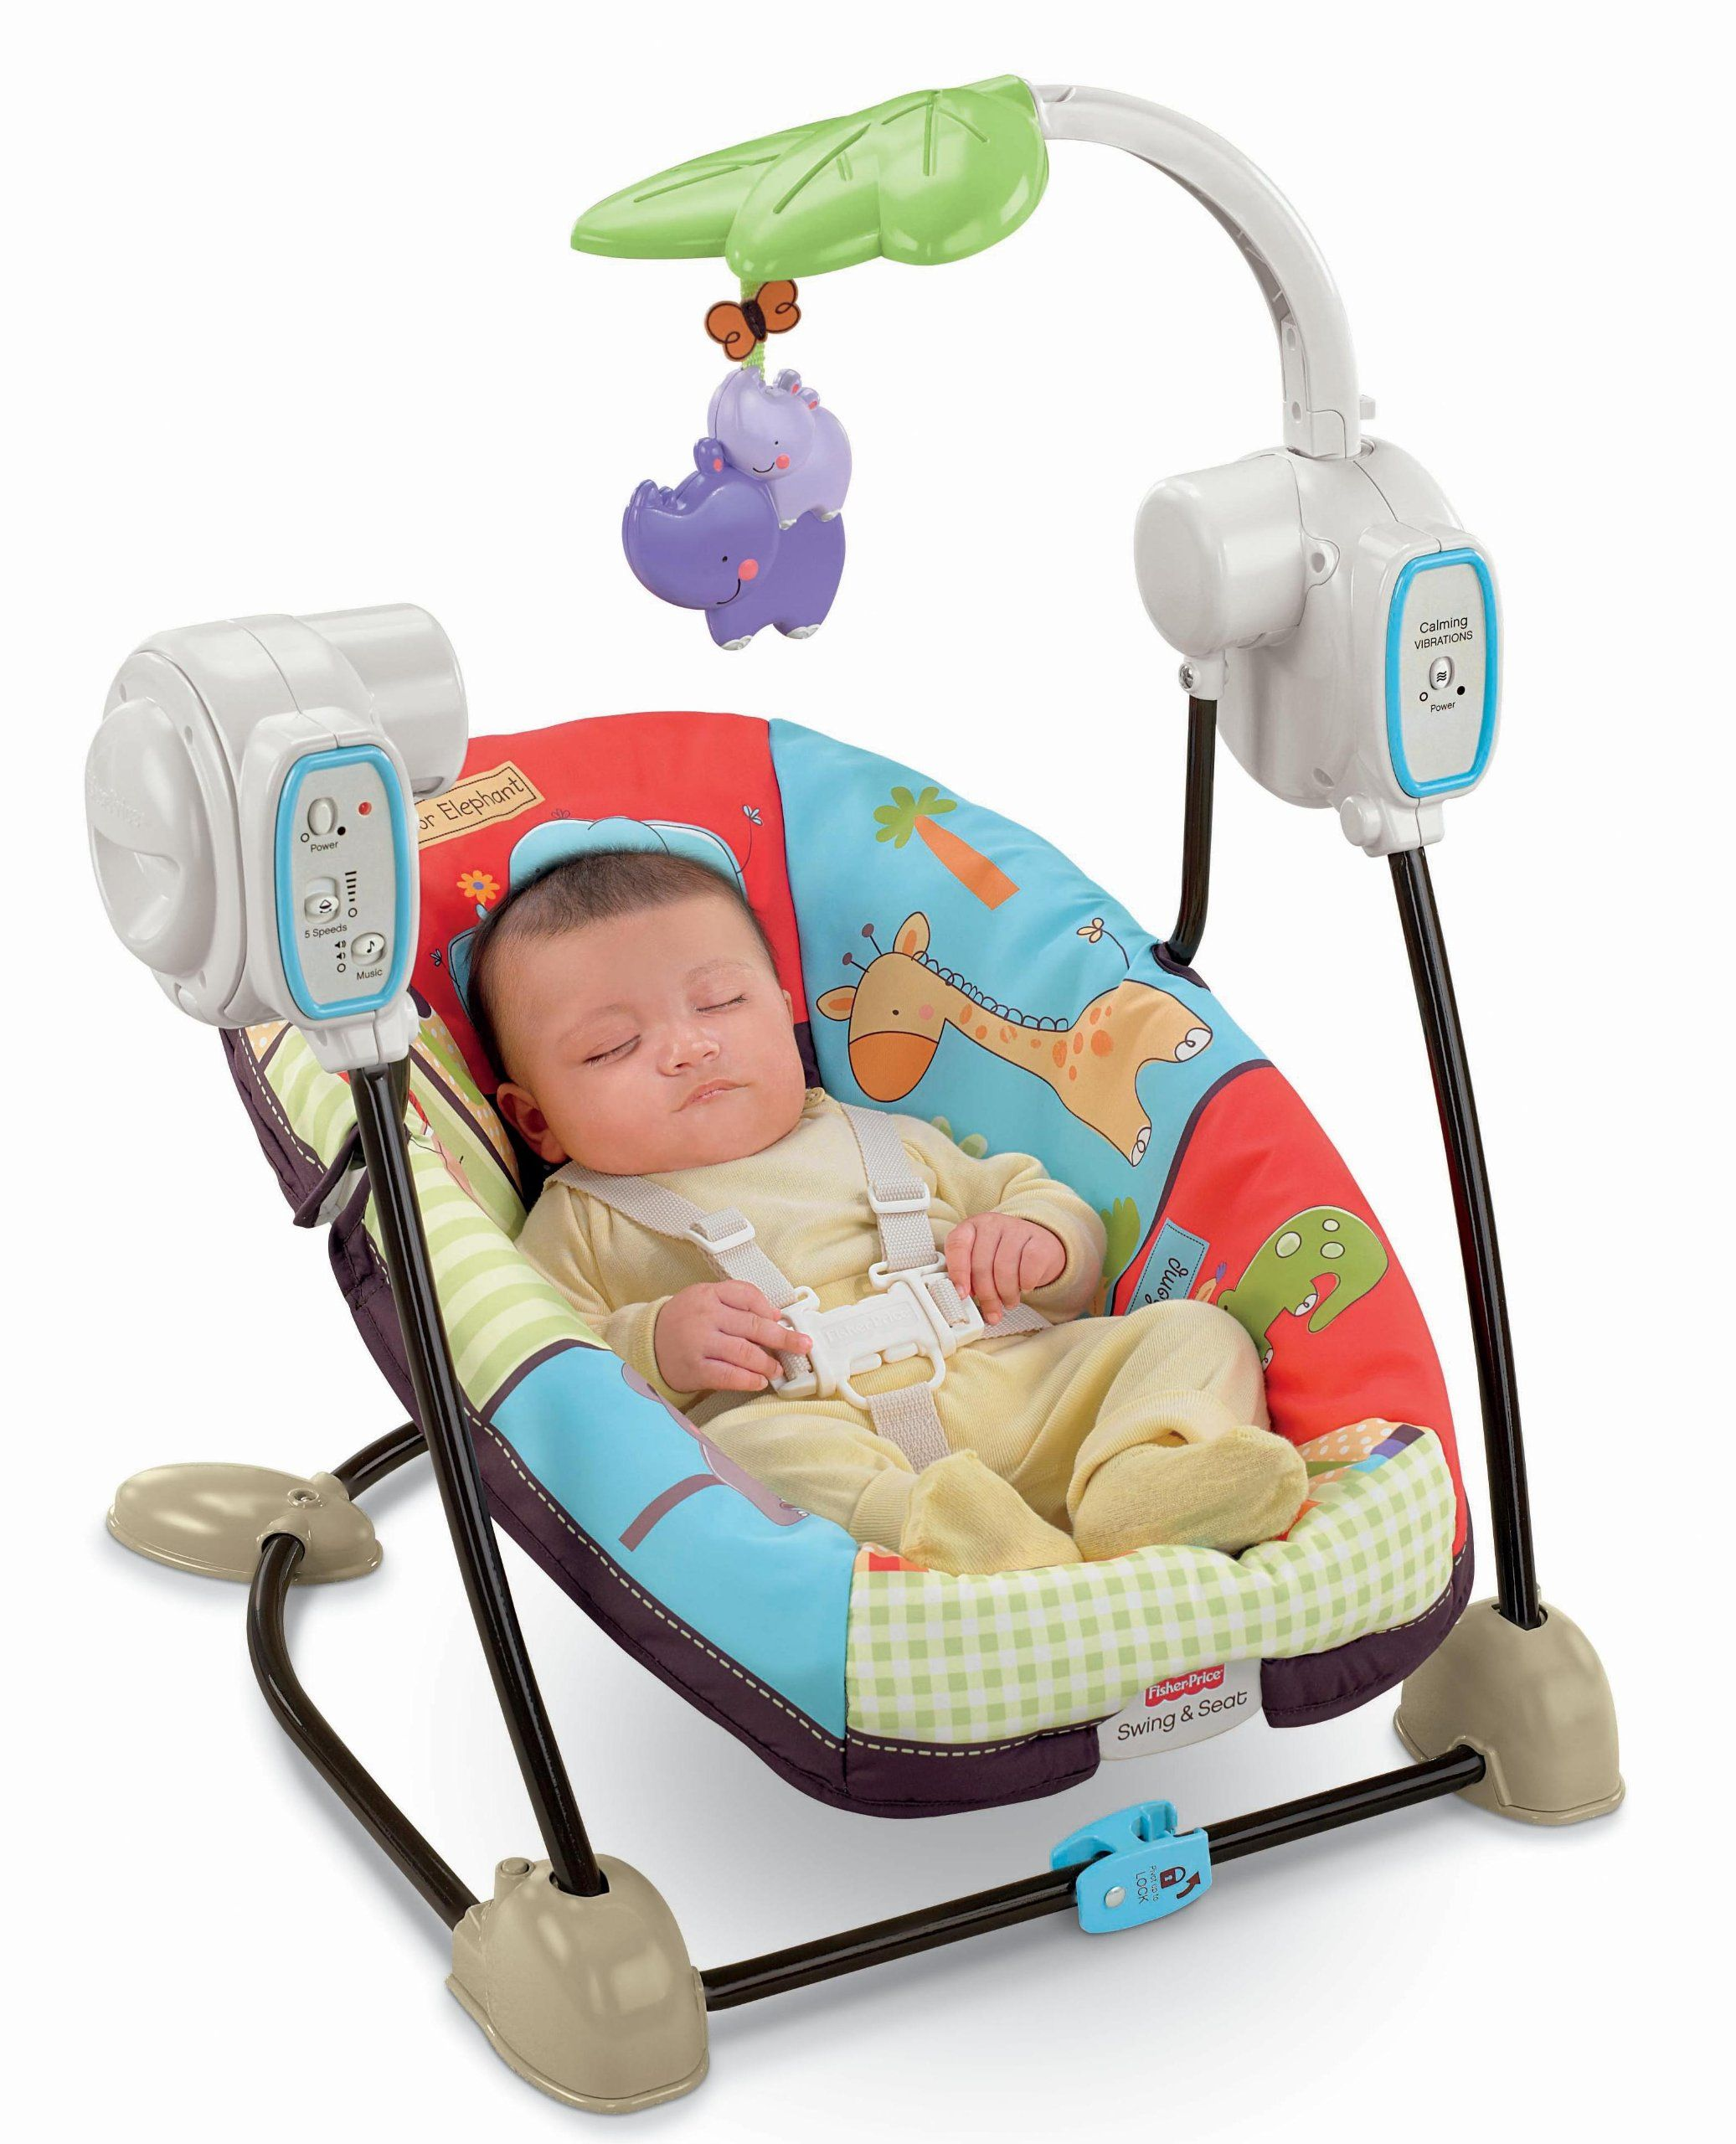 FisherPrice Space Saver Swing and Seat, Luv